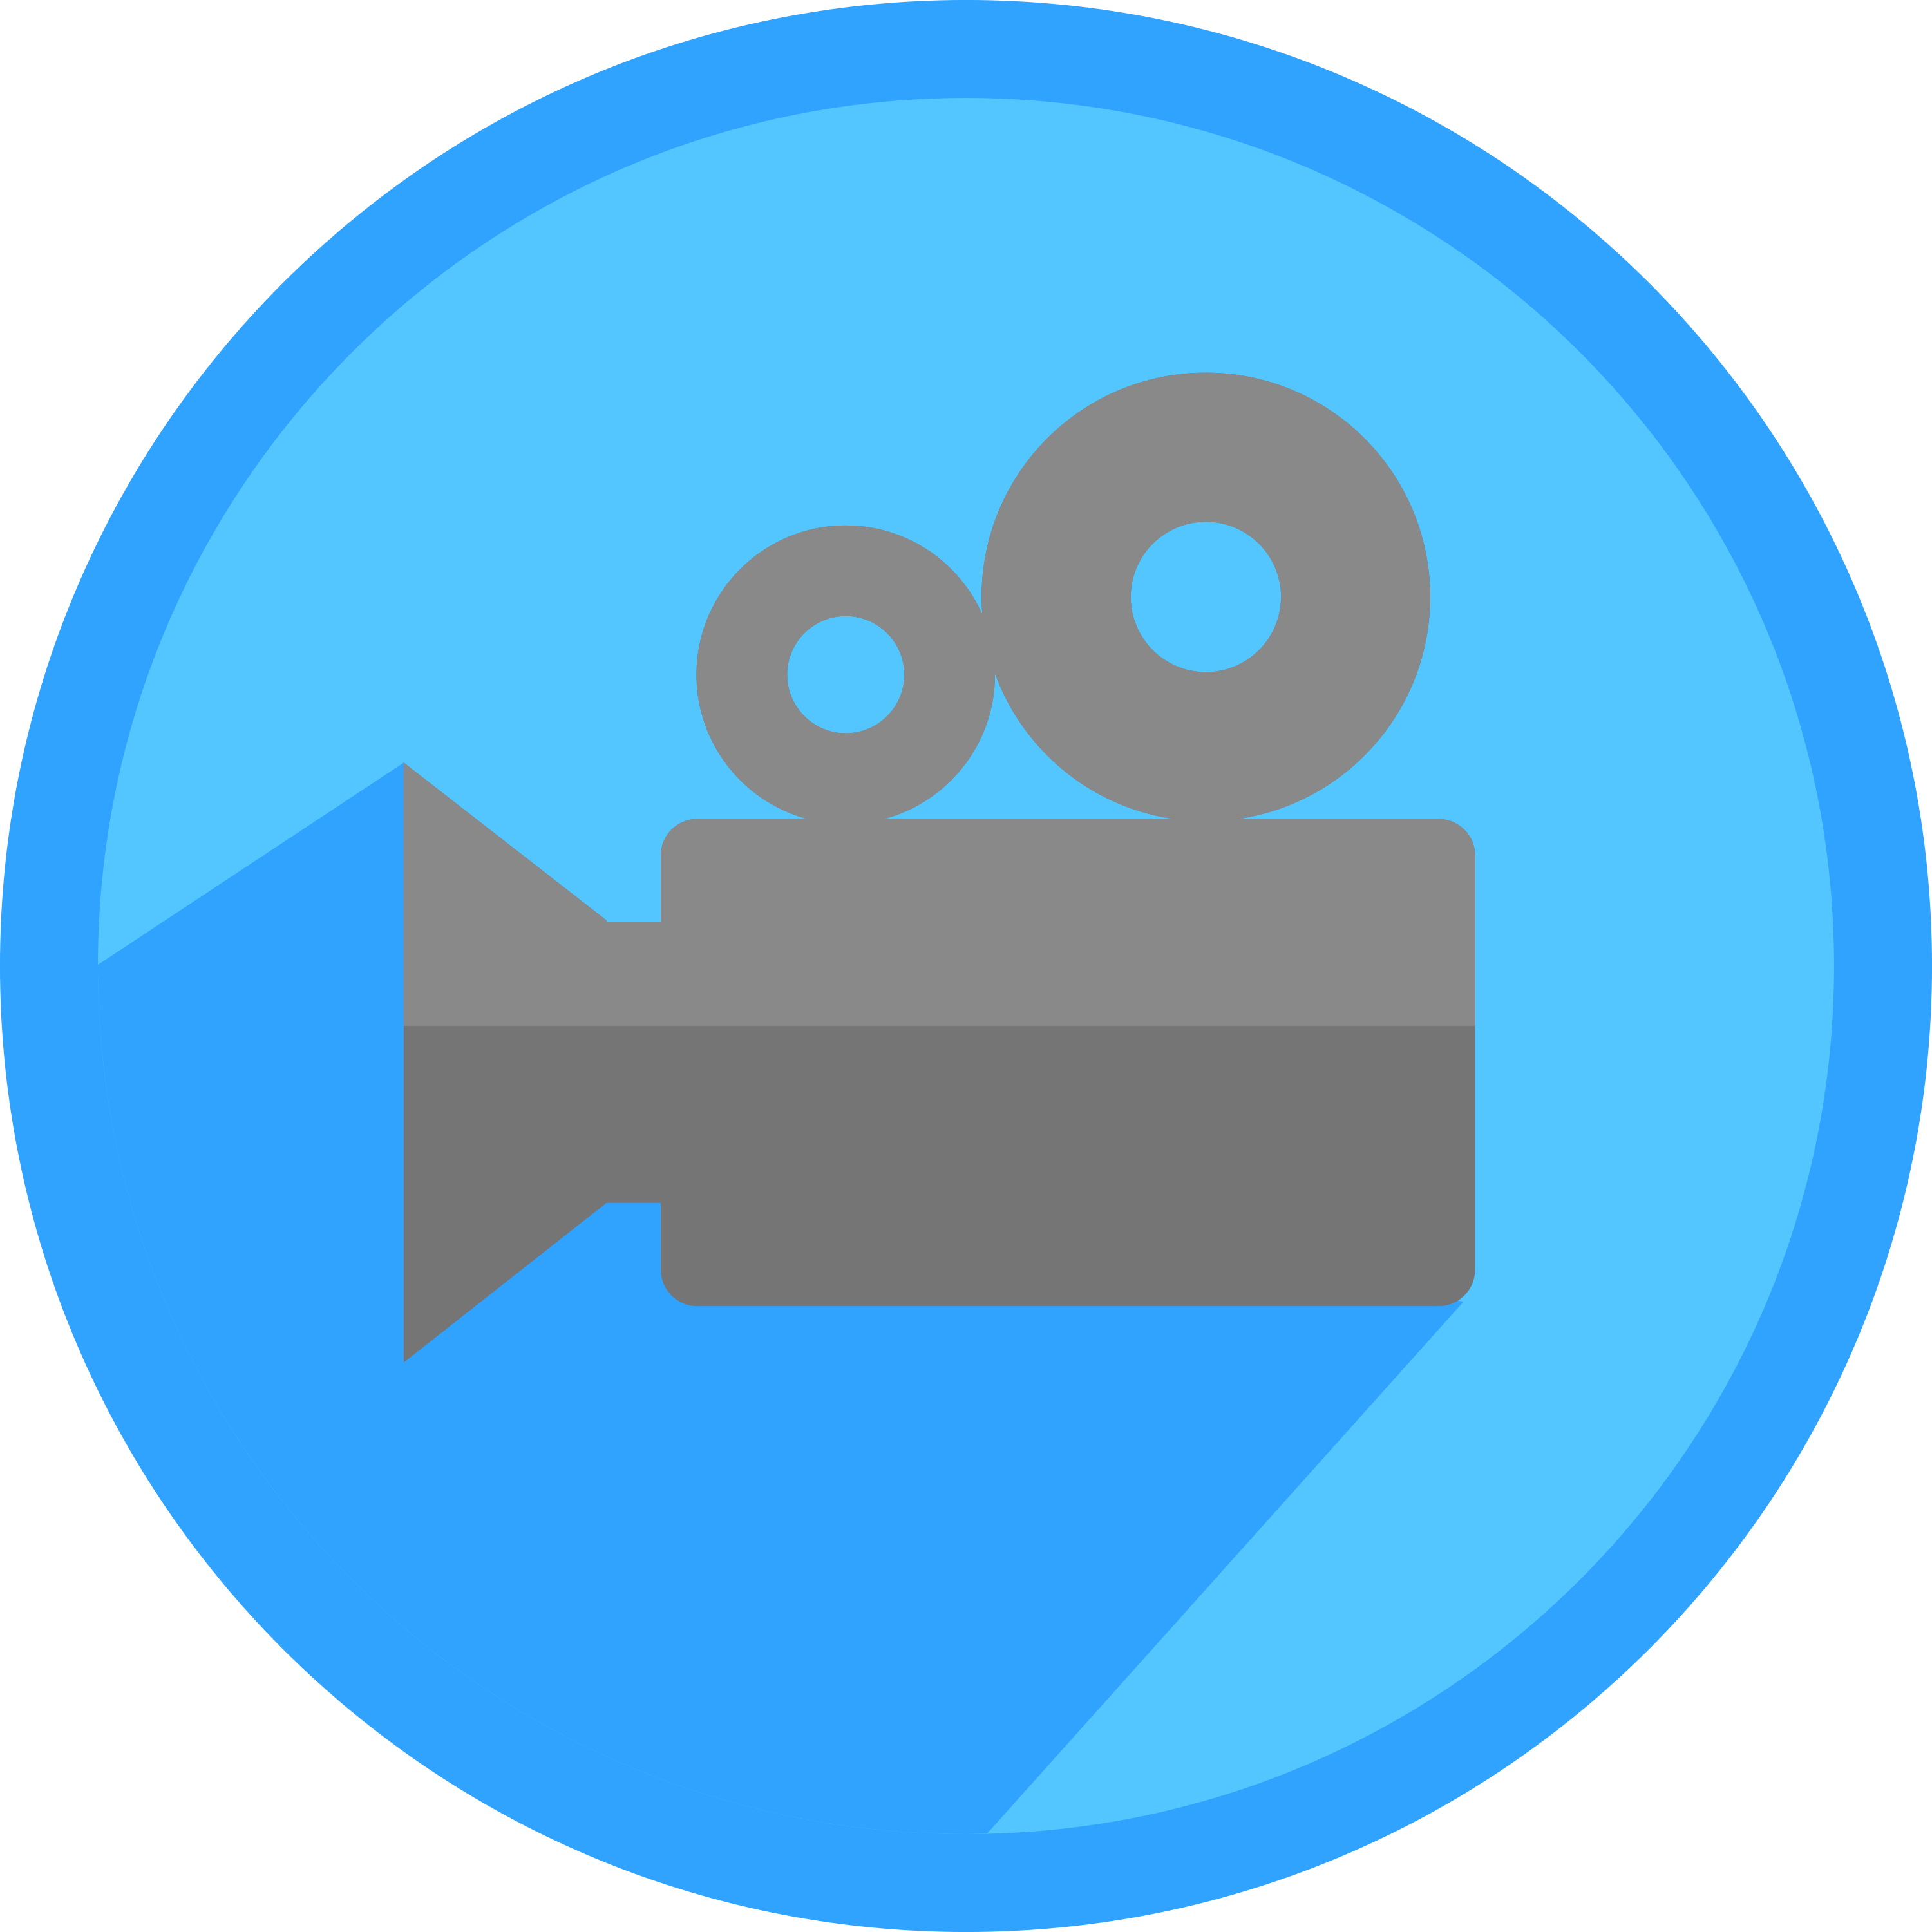 Movie clipart recorder. Hq video png transparent